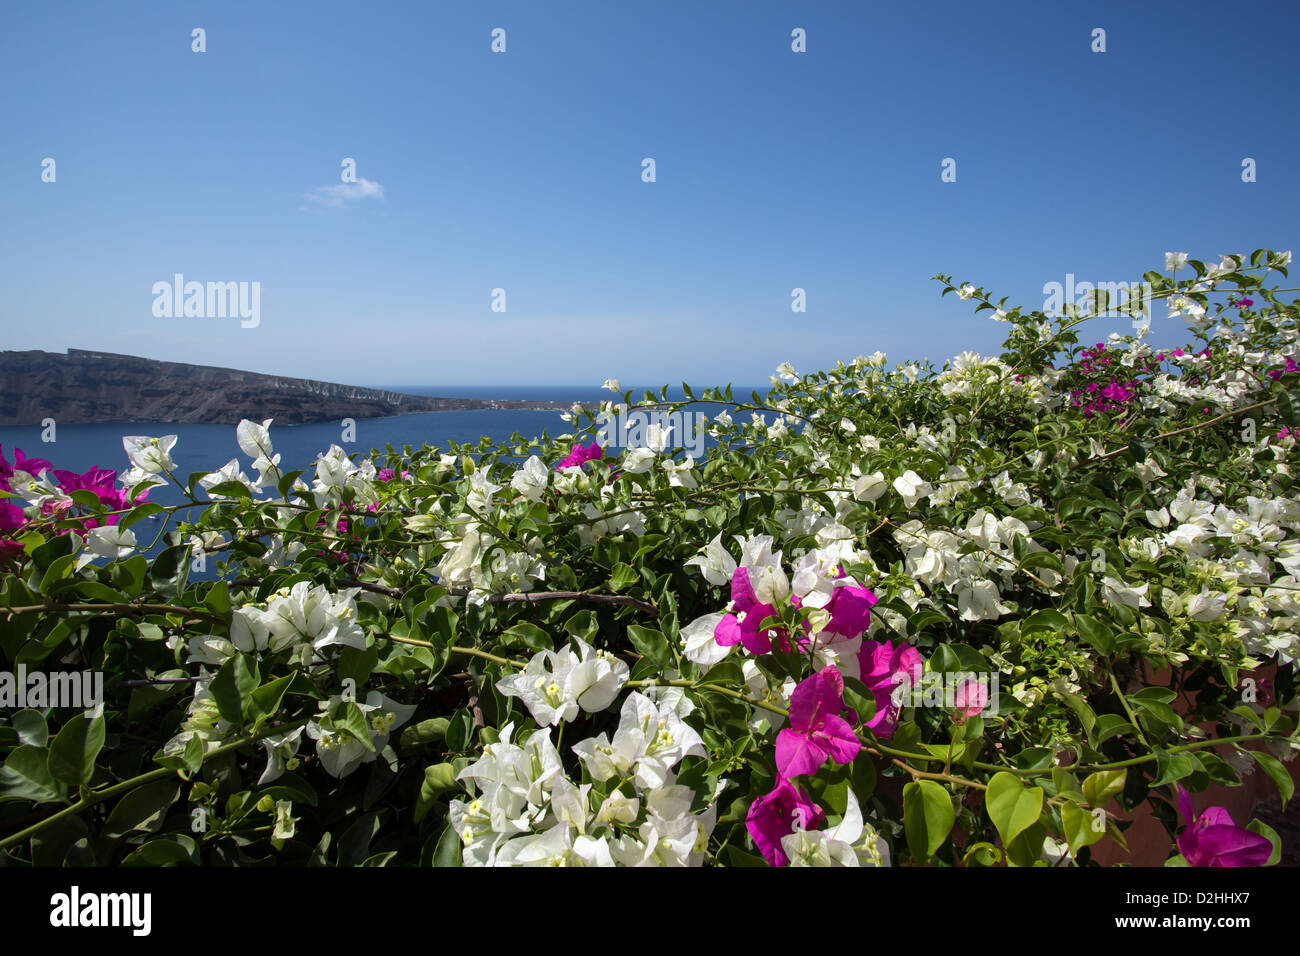 A thick bush of bourgainvillea, at the edge of Oia in Santorini, Greece. - Stock Image